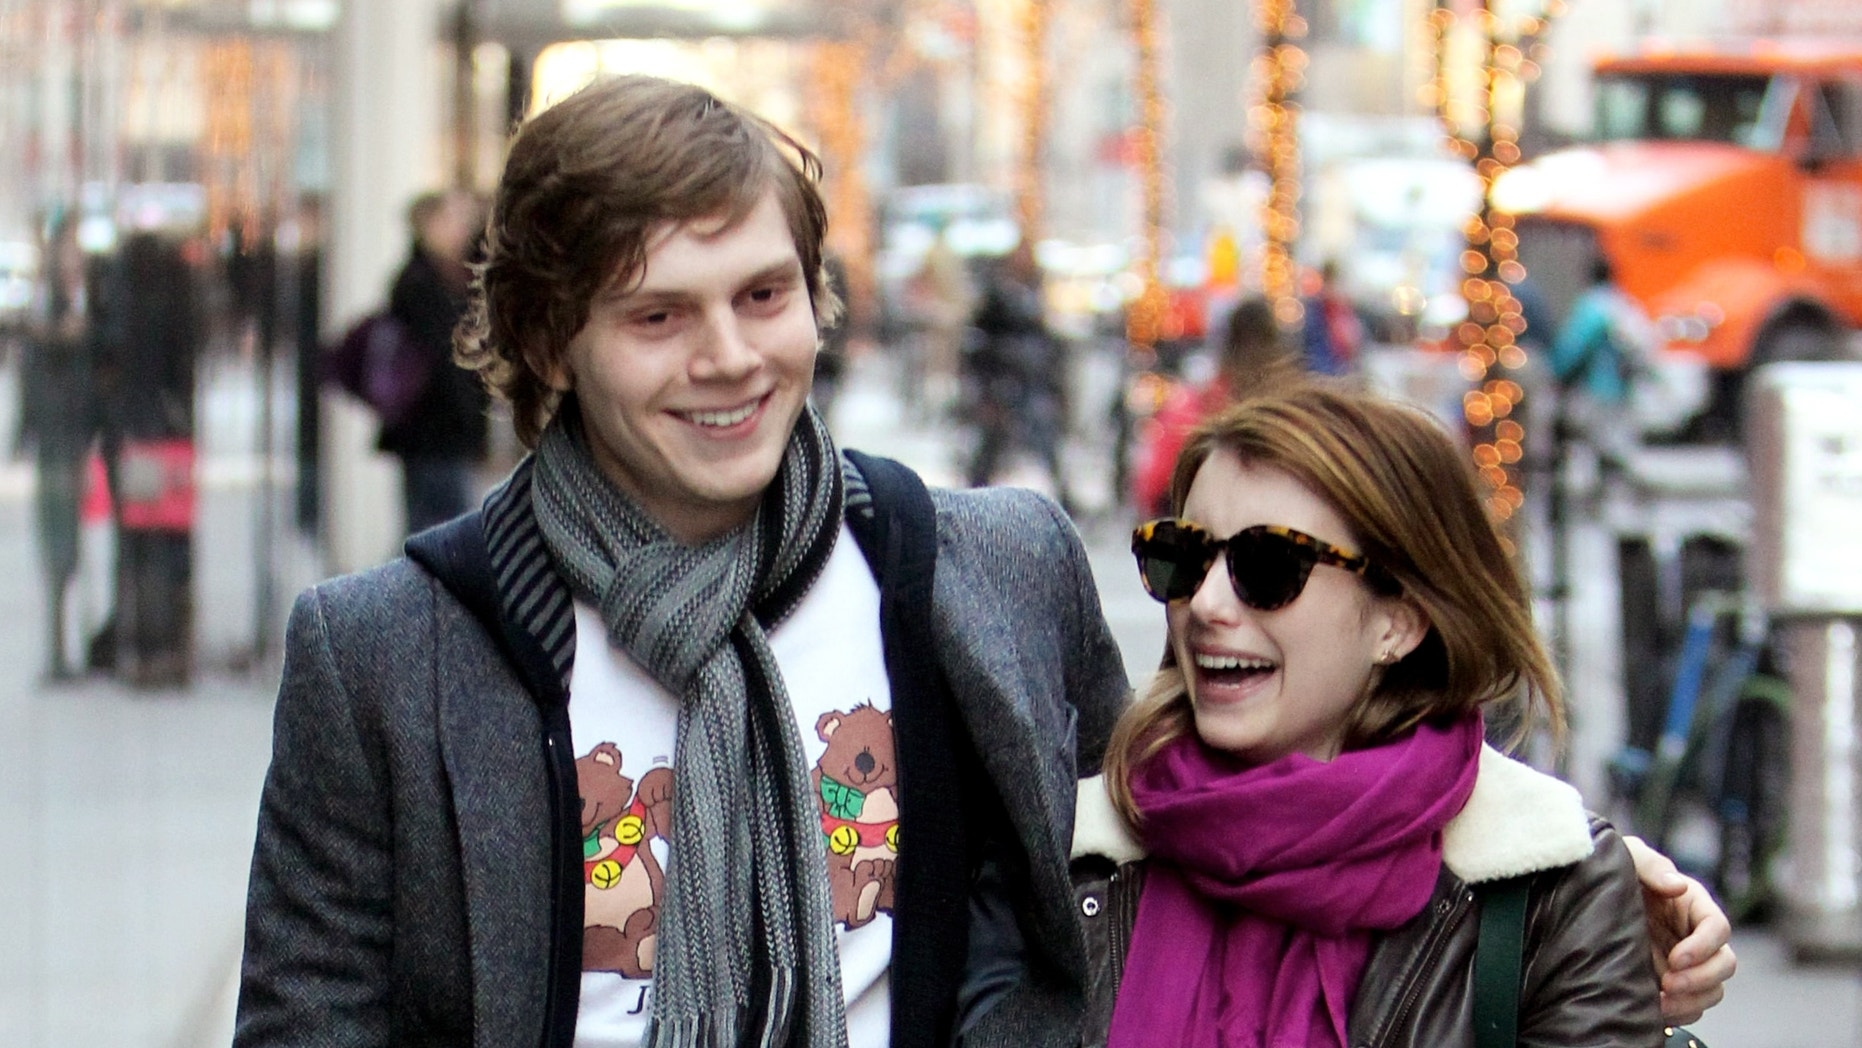 Evan Peters and Emma Roberts (pictured) have reportedly broken up for the third time since their engagement in 2013.